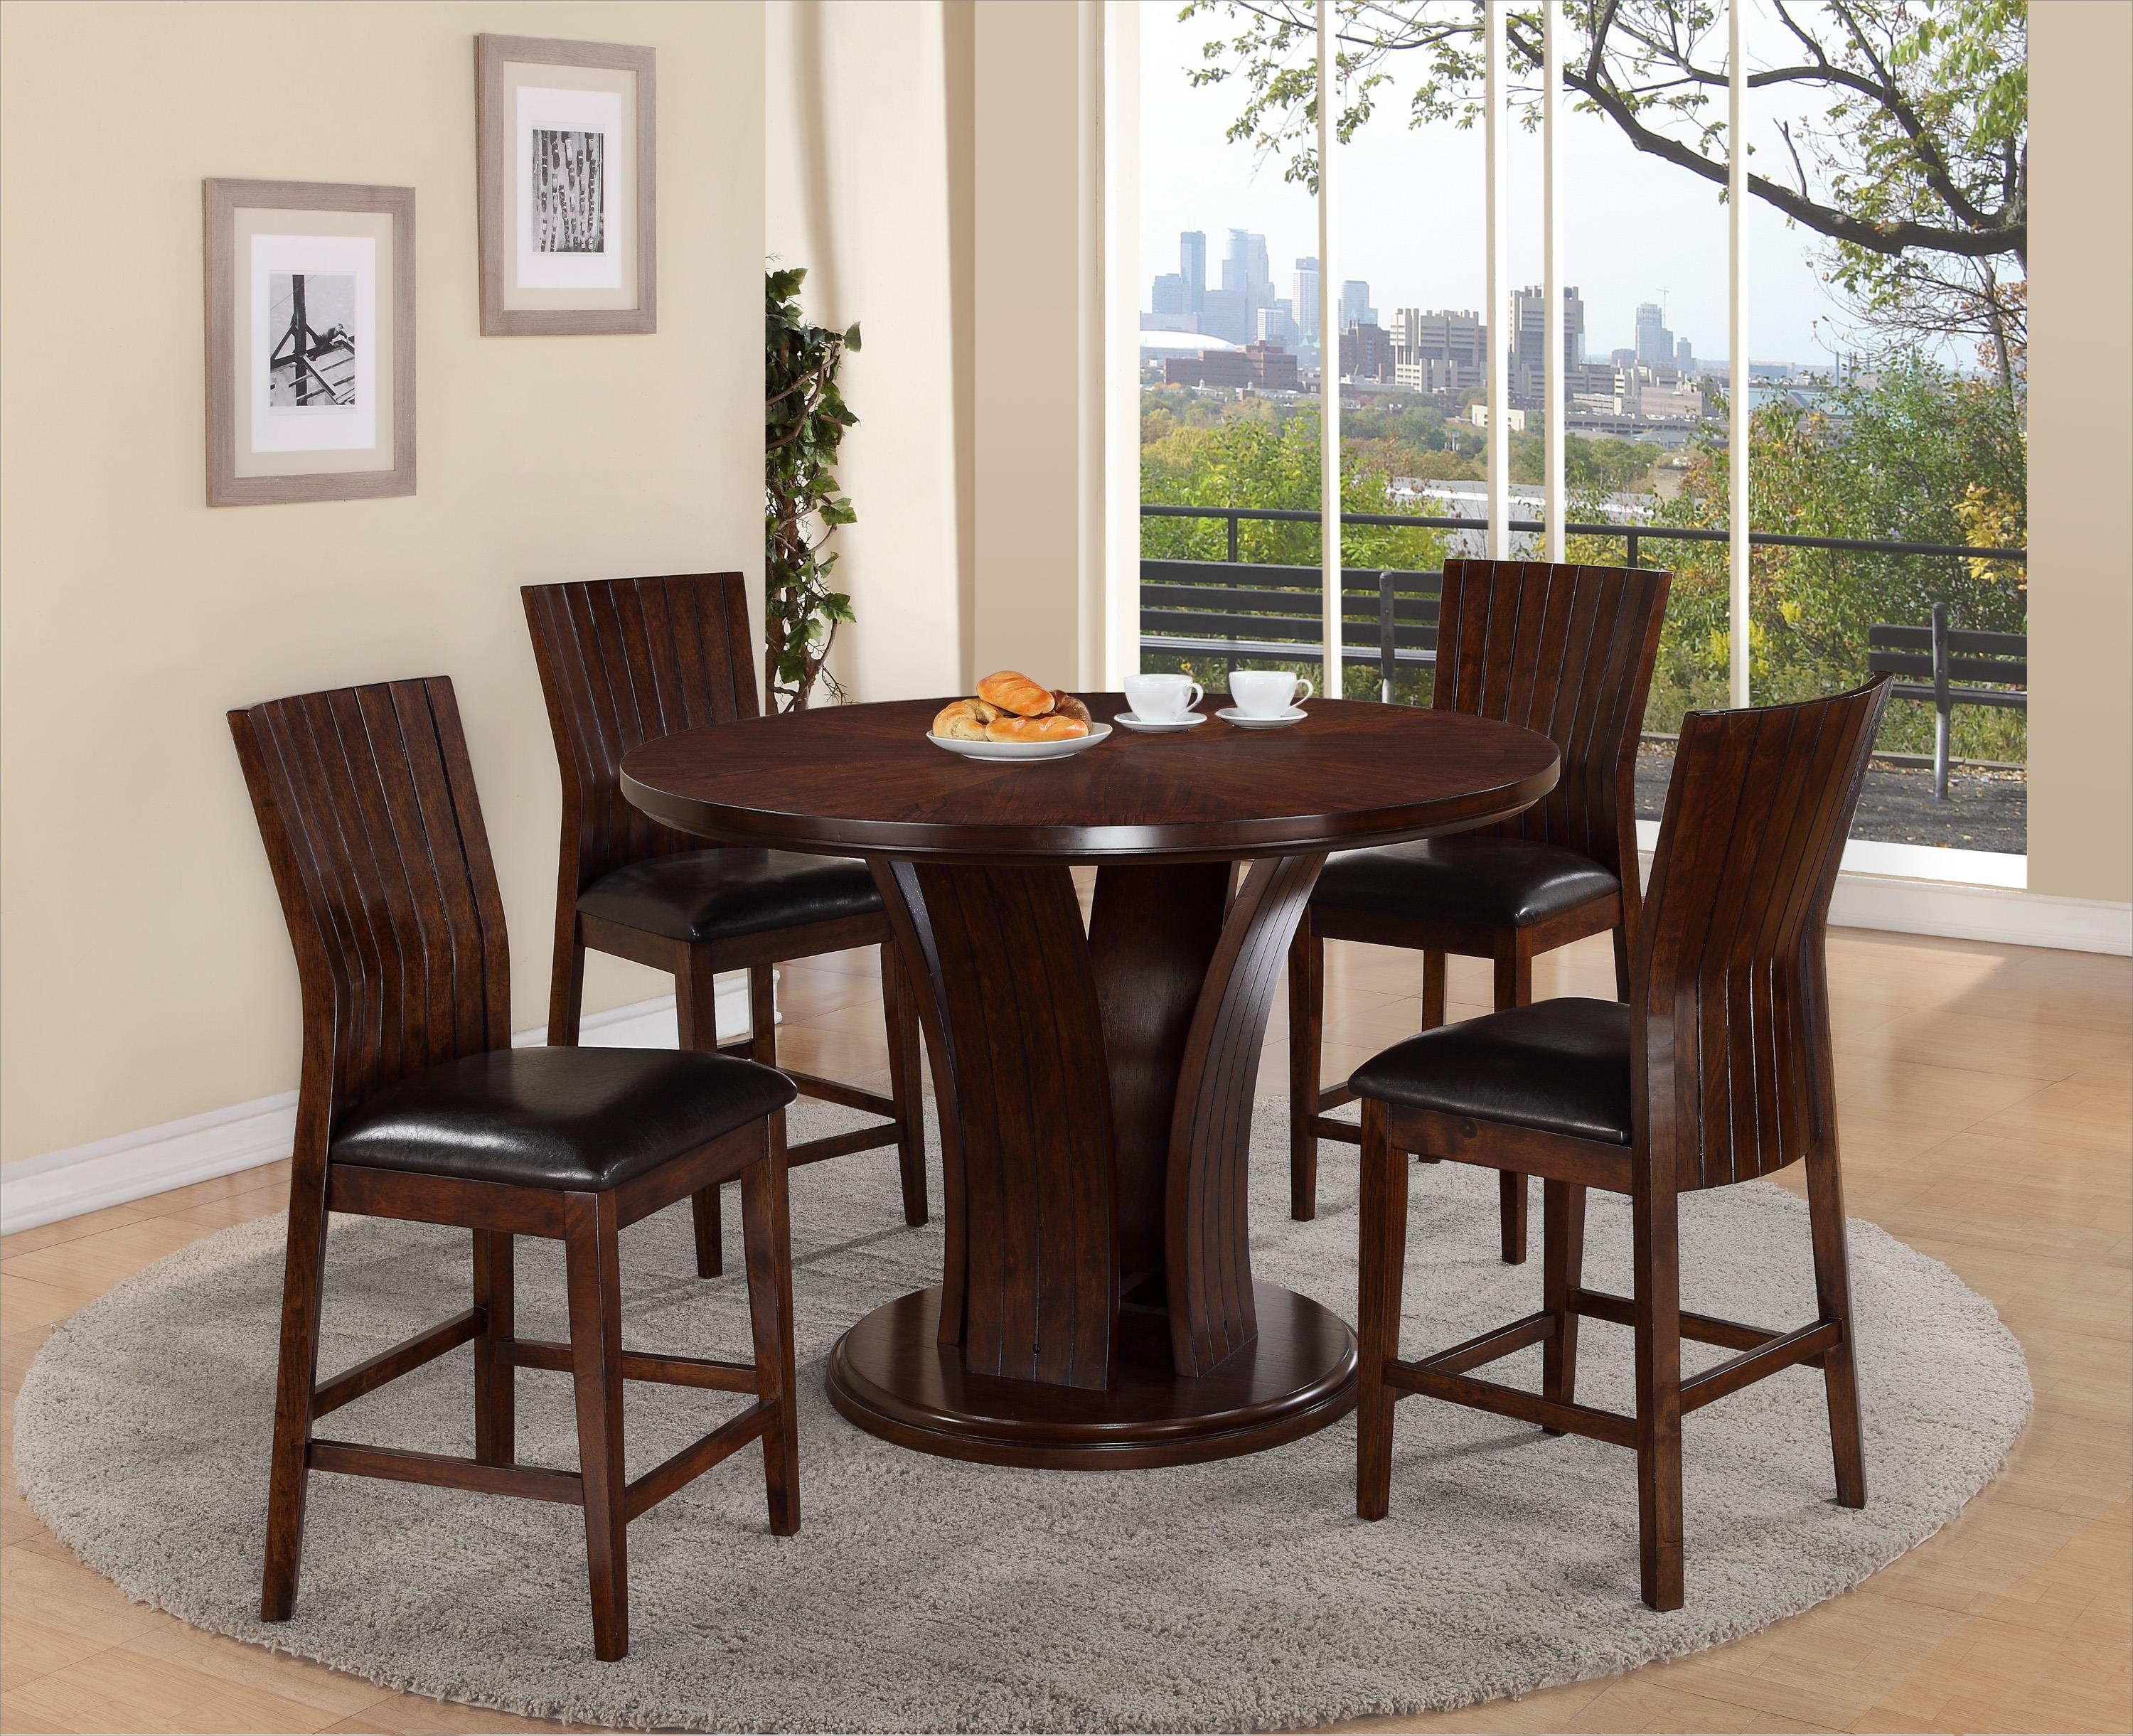 belfort essentials daria round pub height dining table and stool set belfort furniture pub. Black Bedroom Furniture Sets. Home Design Ideas